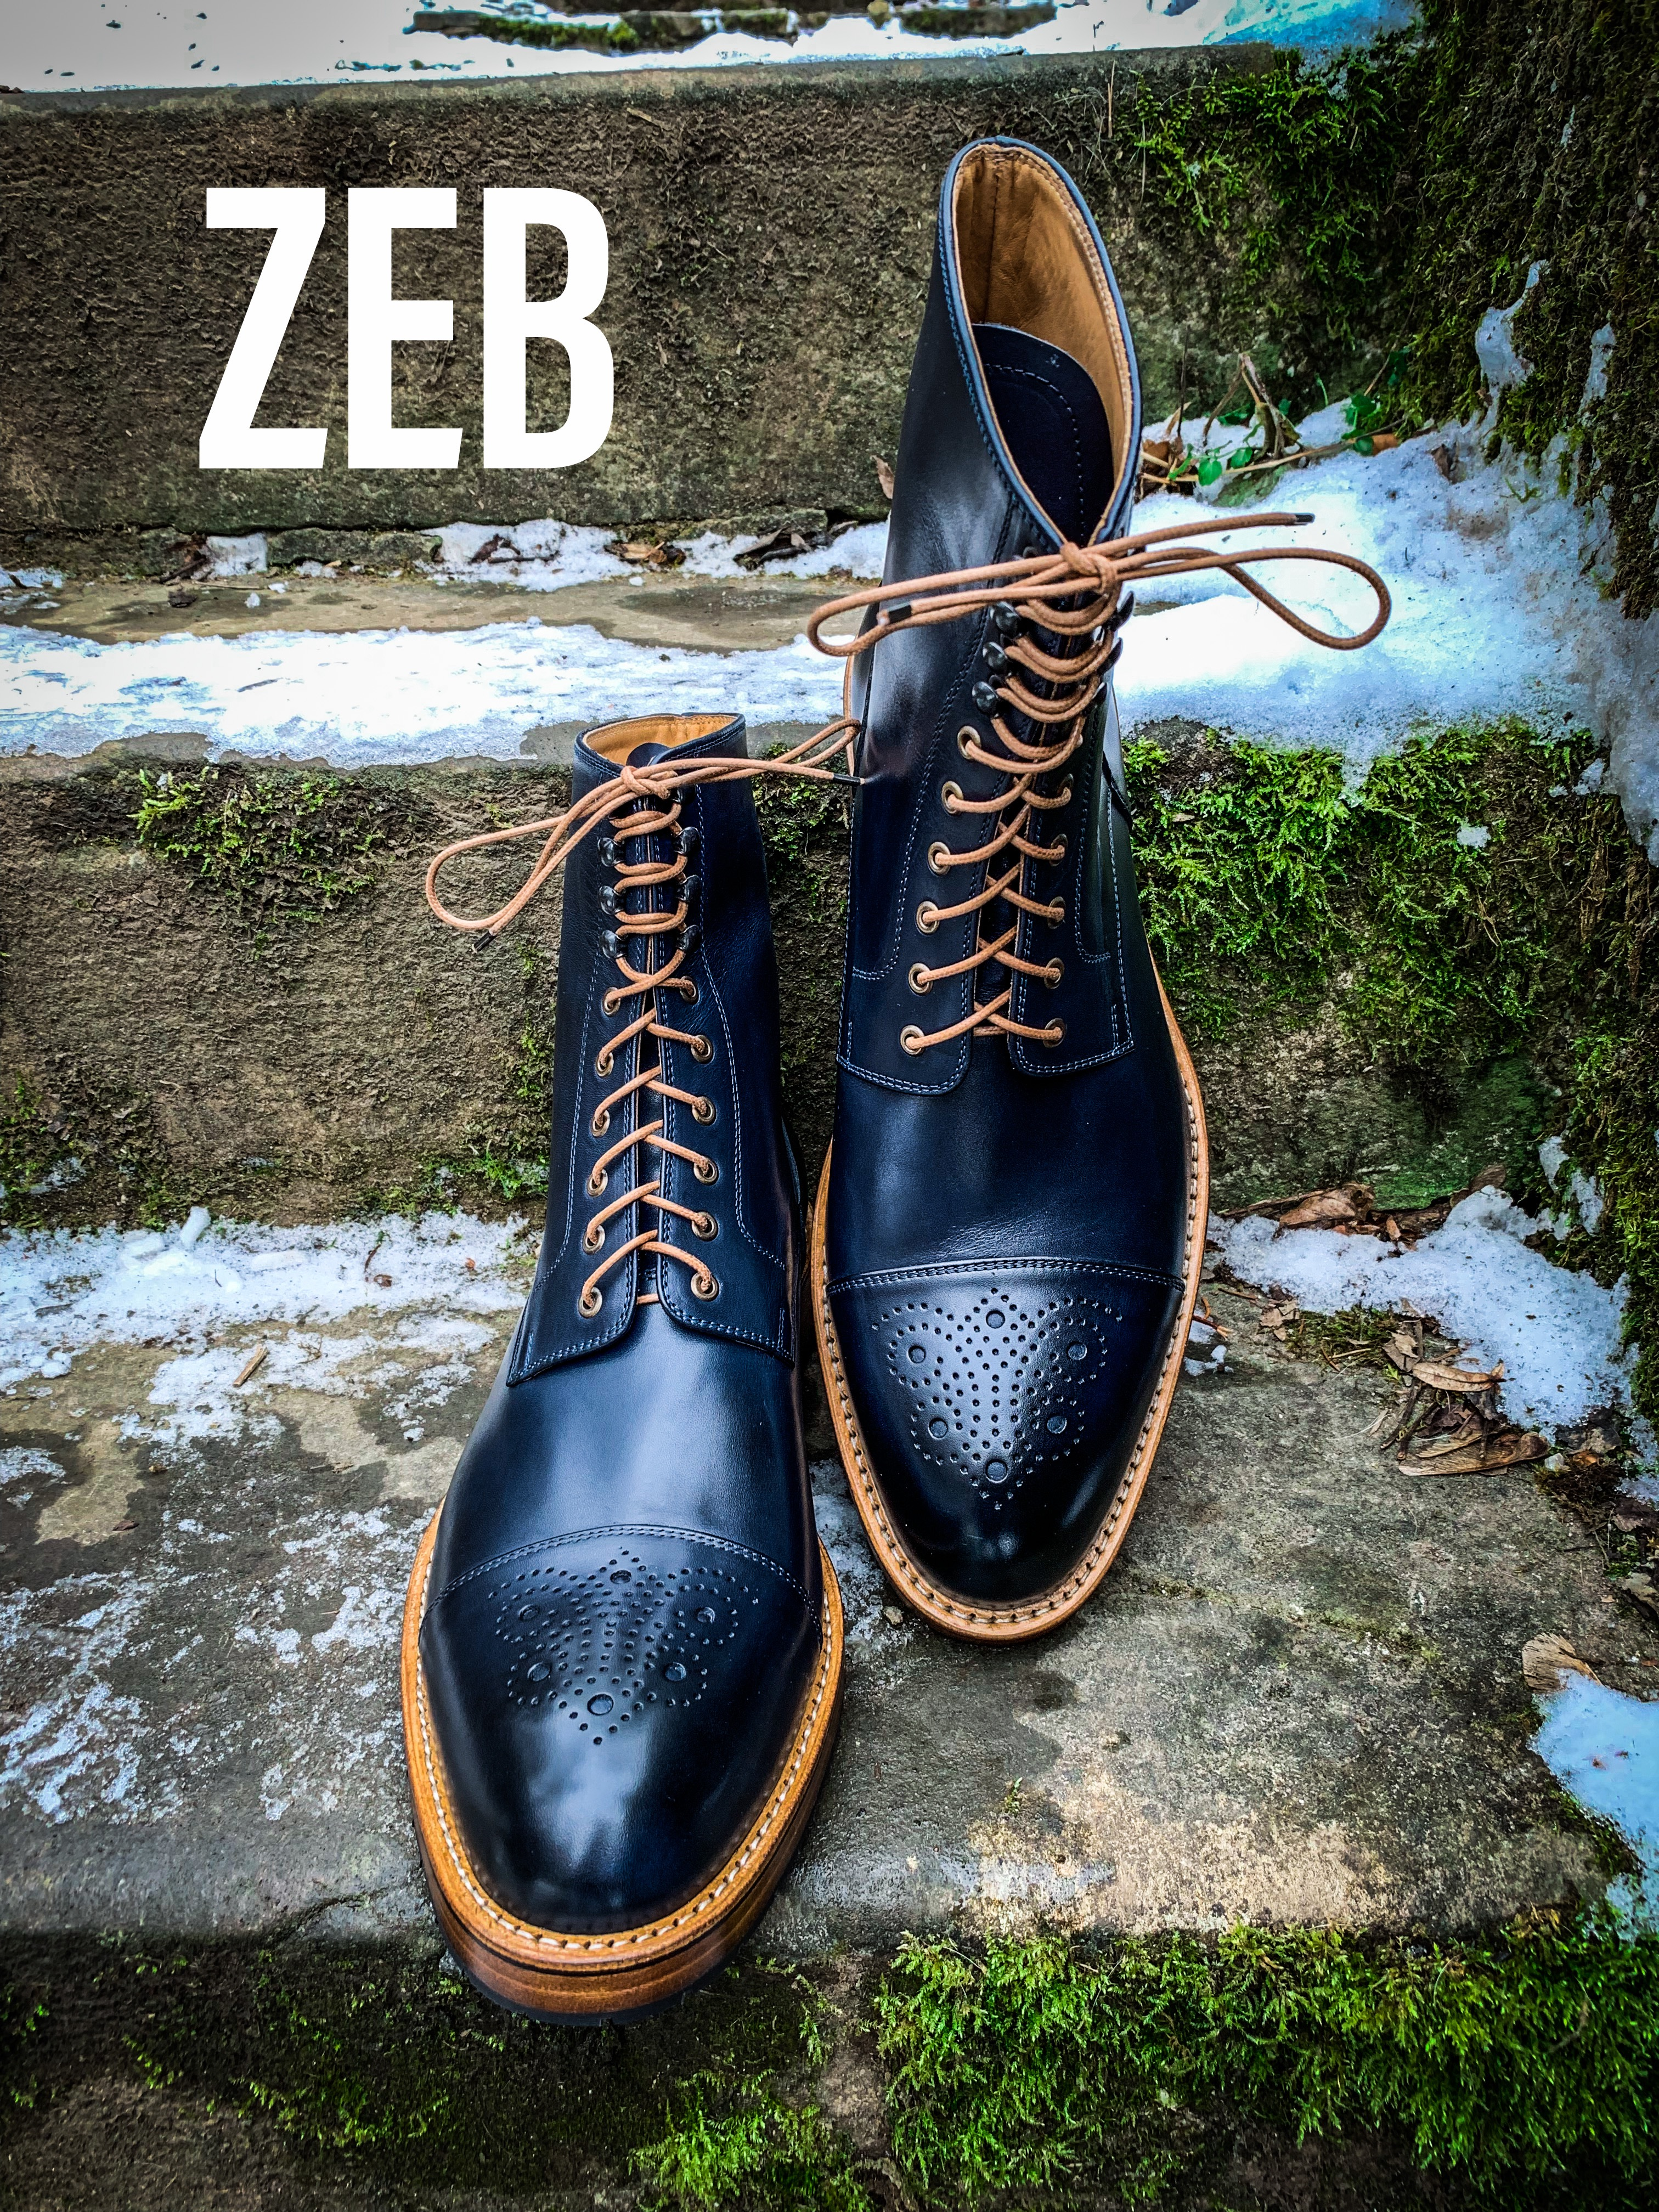 Leather-Boots-London-BLK2-Gal1